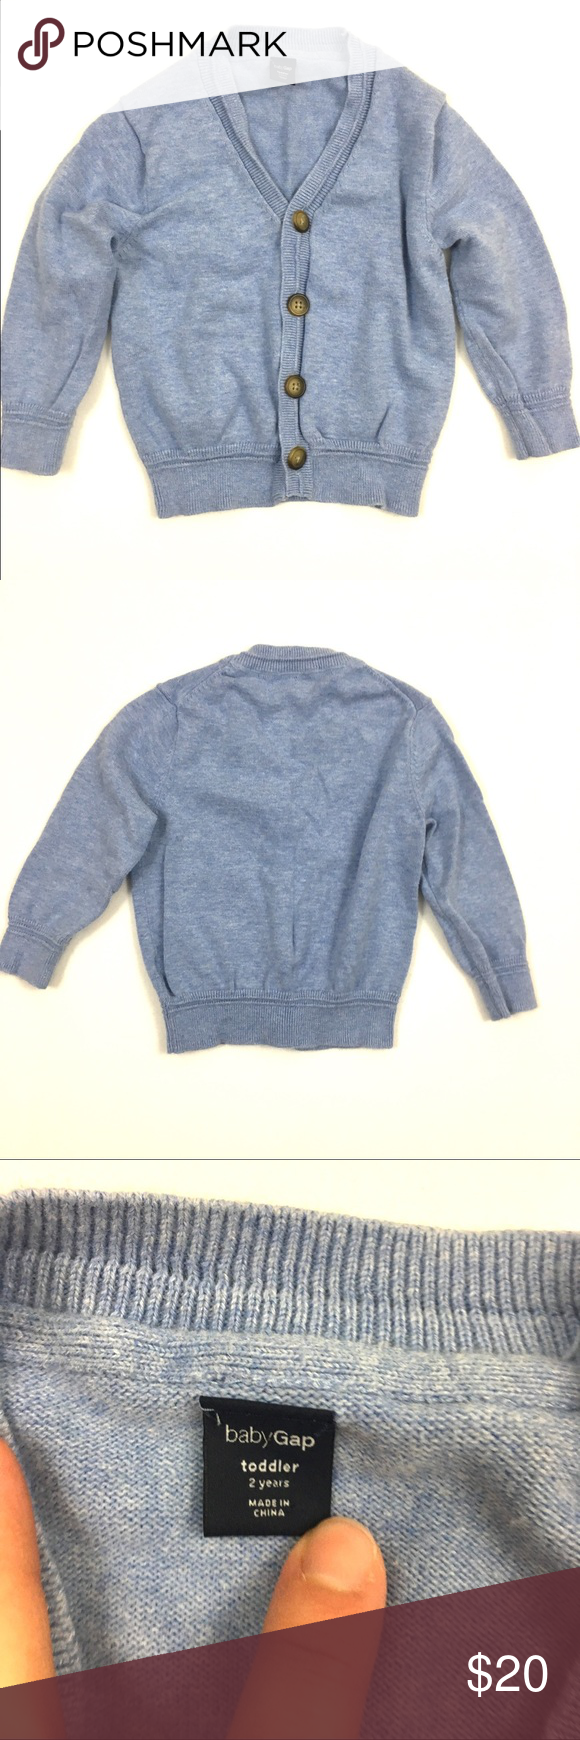 Boys (2T) Gap blue cardigan sweater Boys (2T) Gap light blue v ...